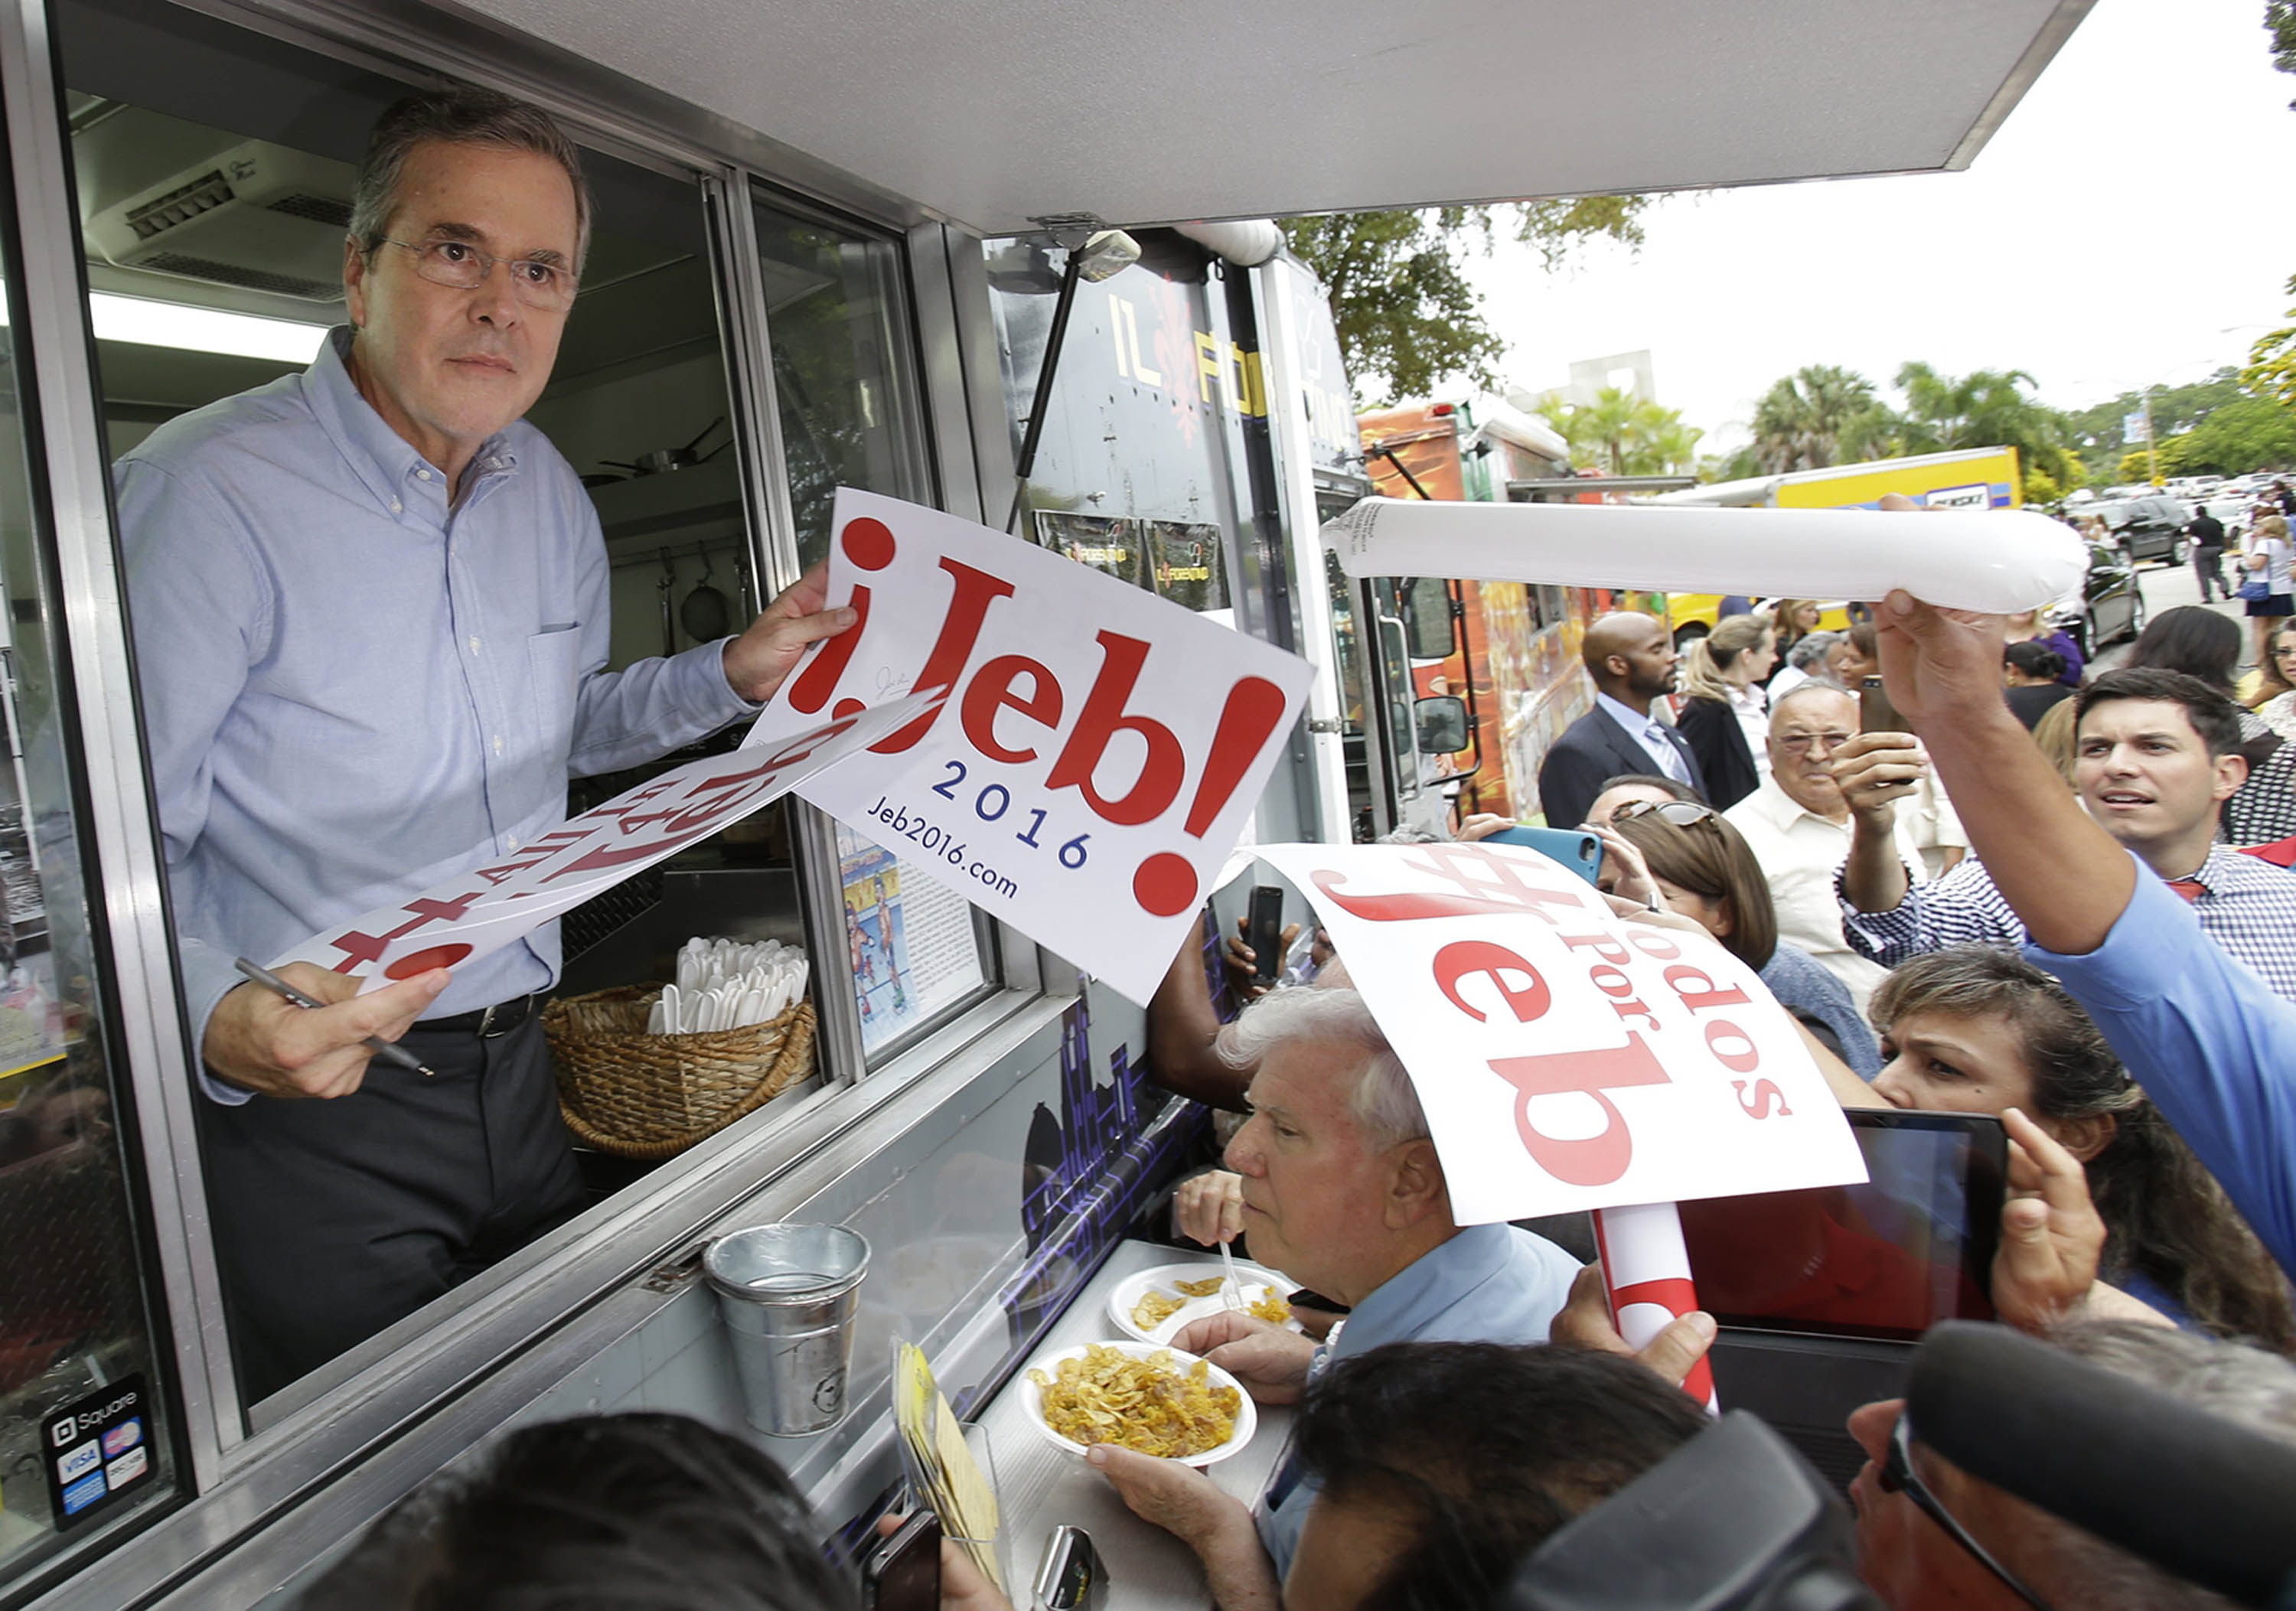 Jeb Bush, inside a food truck in Miami, signed autographs on June 15.